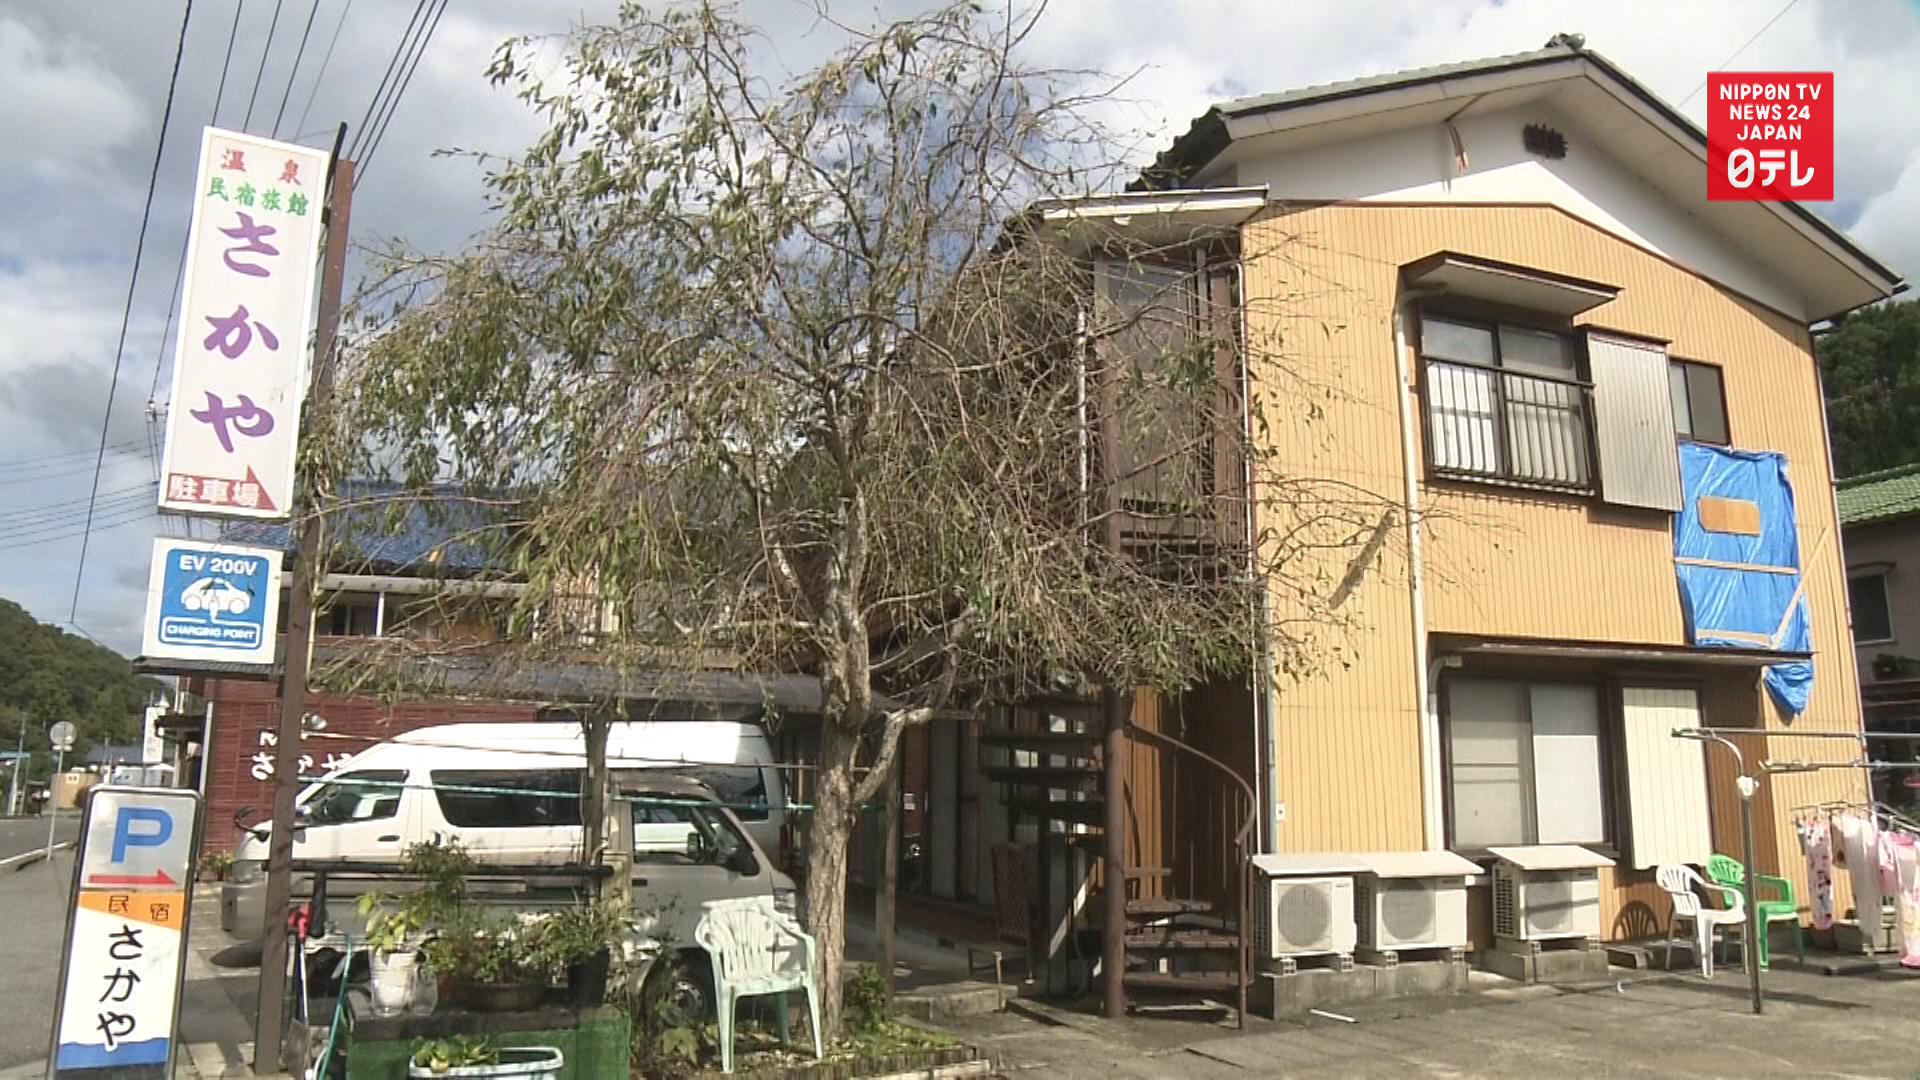 Power restored in Chiba but tourism remains affected